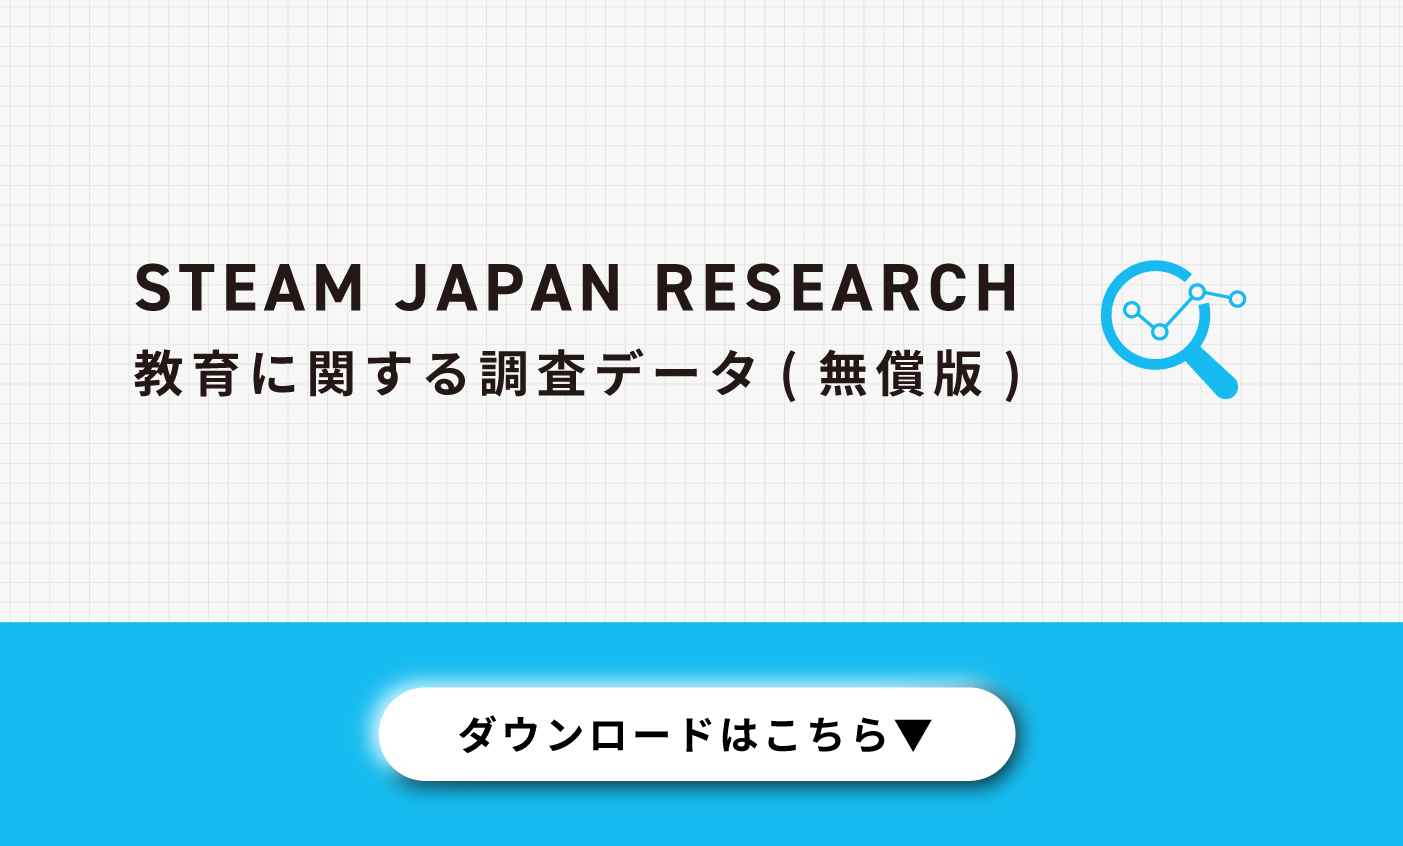 STEAM JAPAN RESEARCH